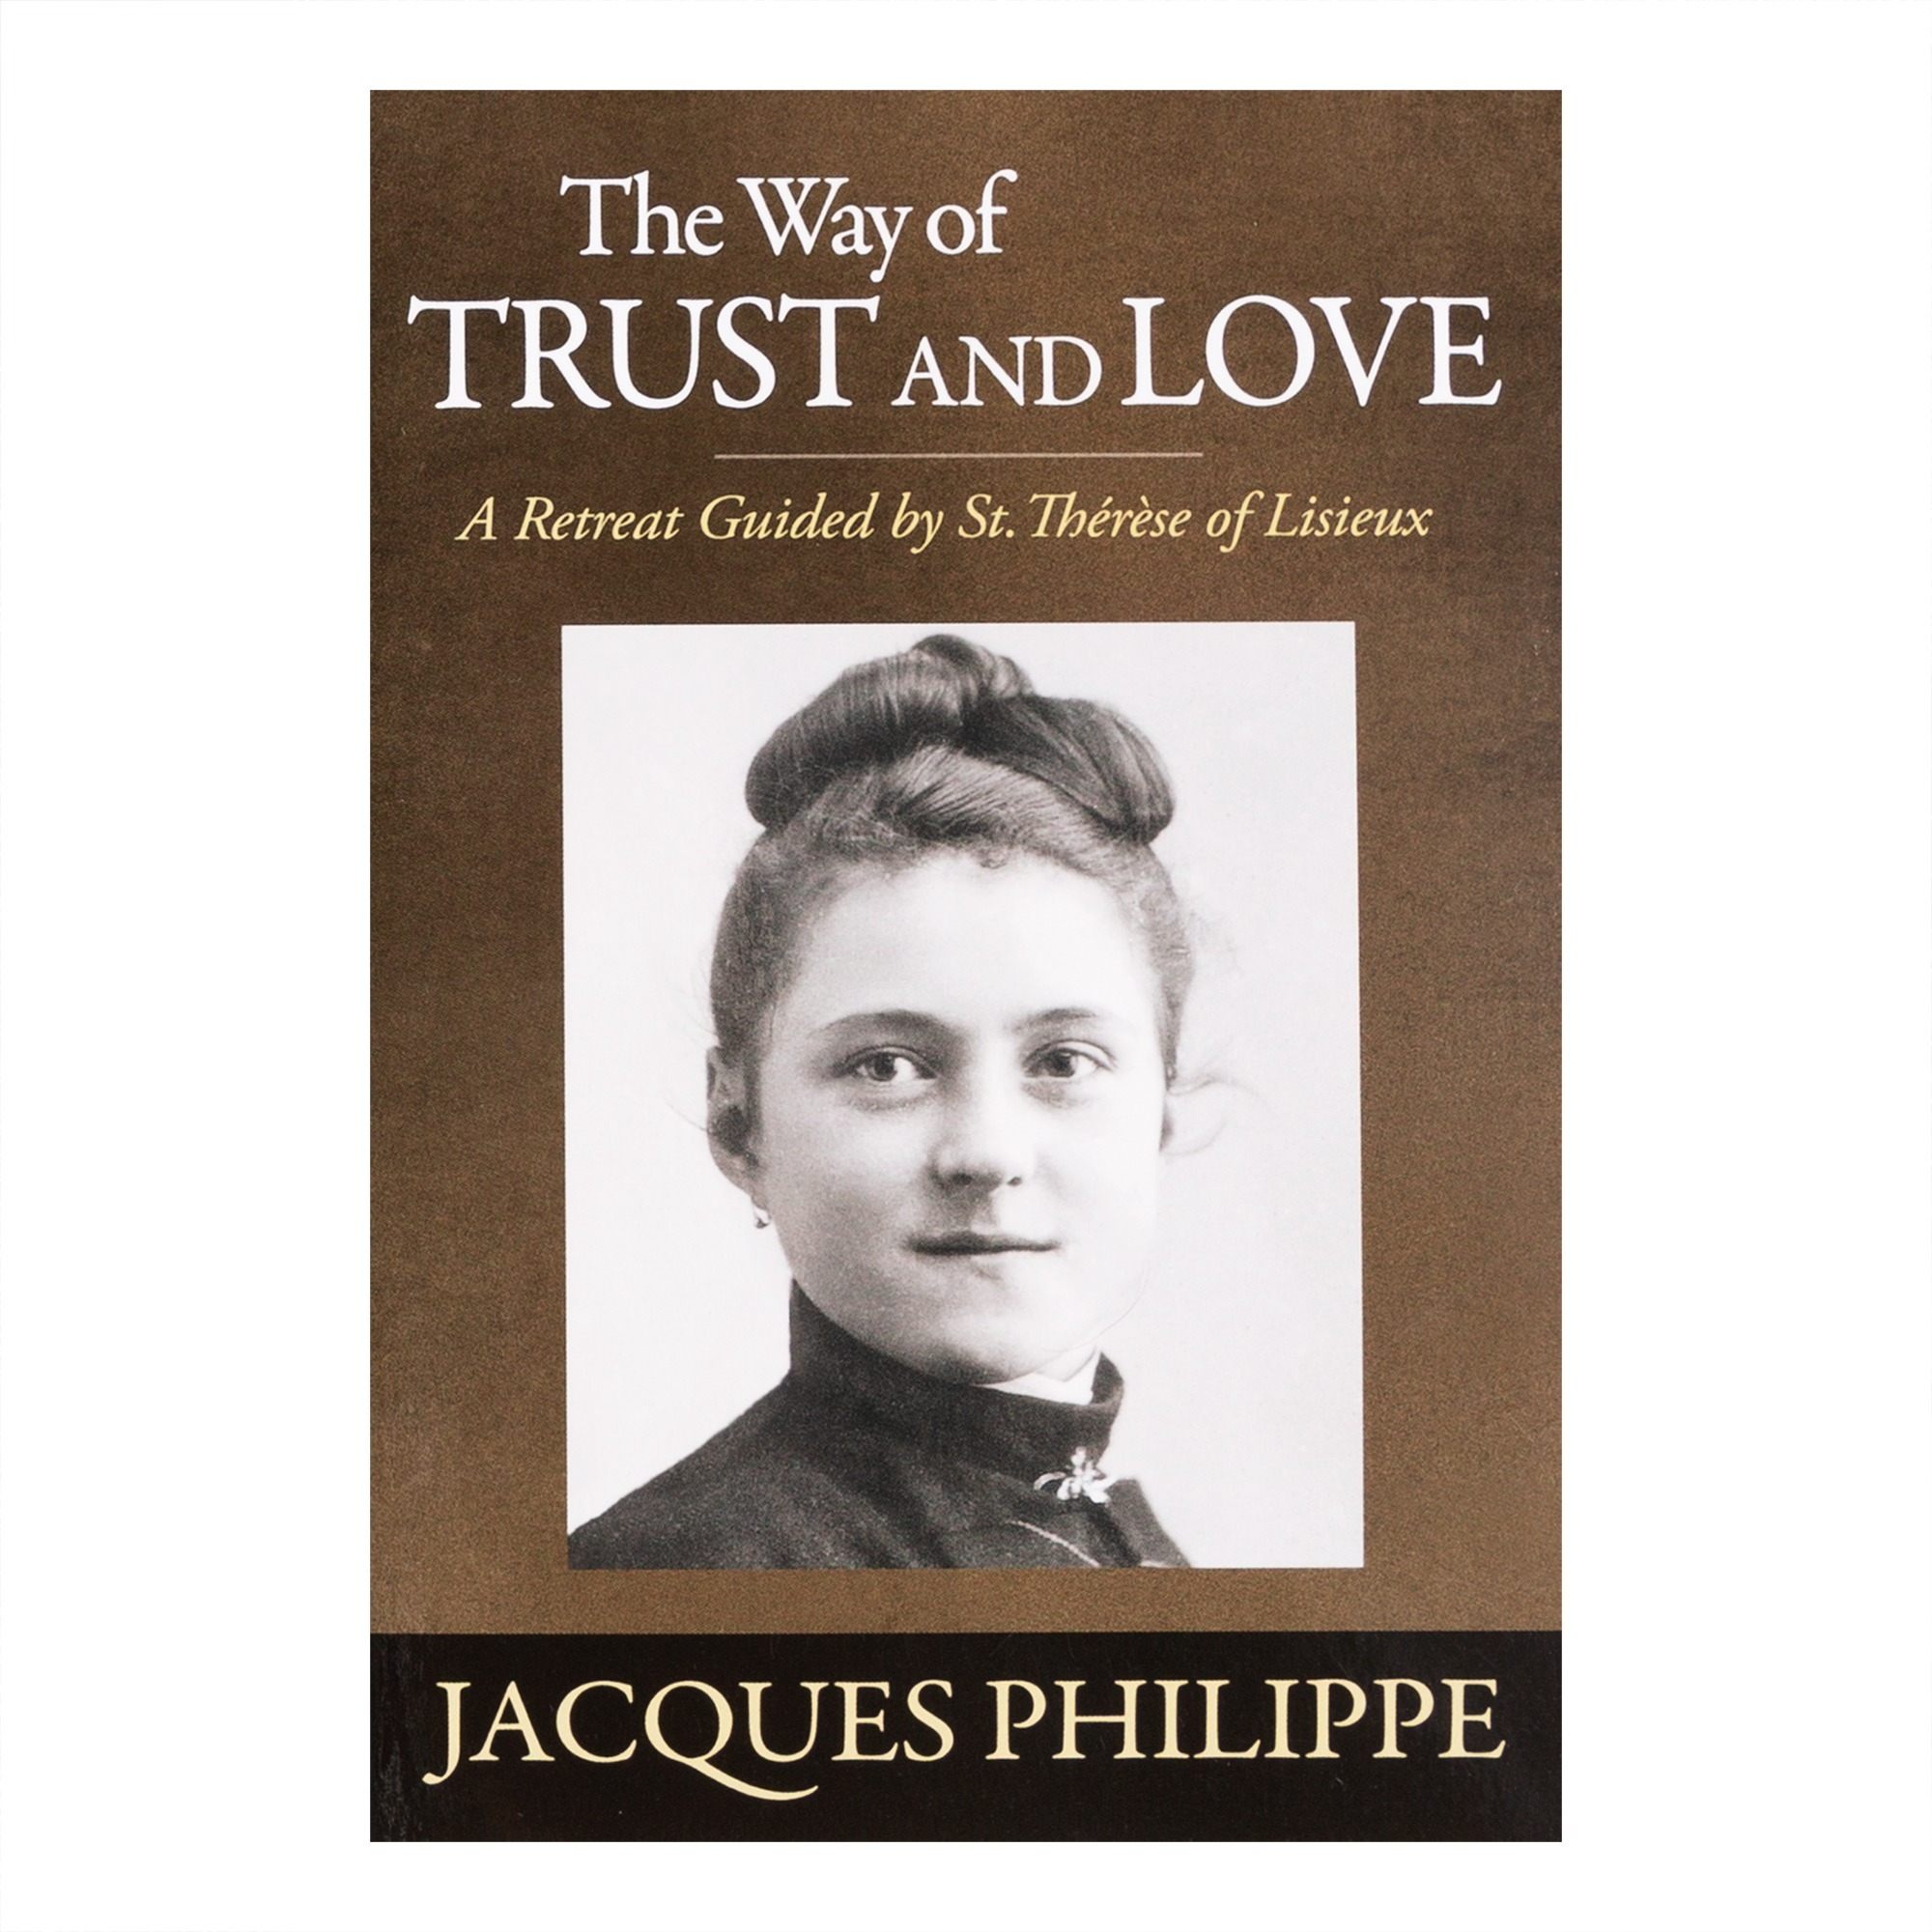 The Way of Trust and Love